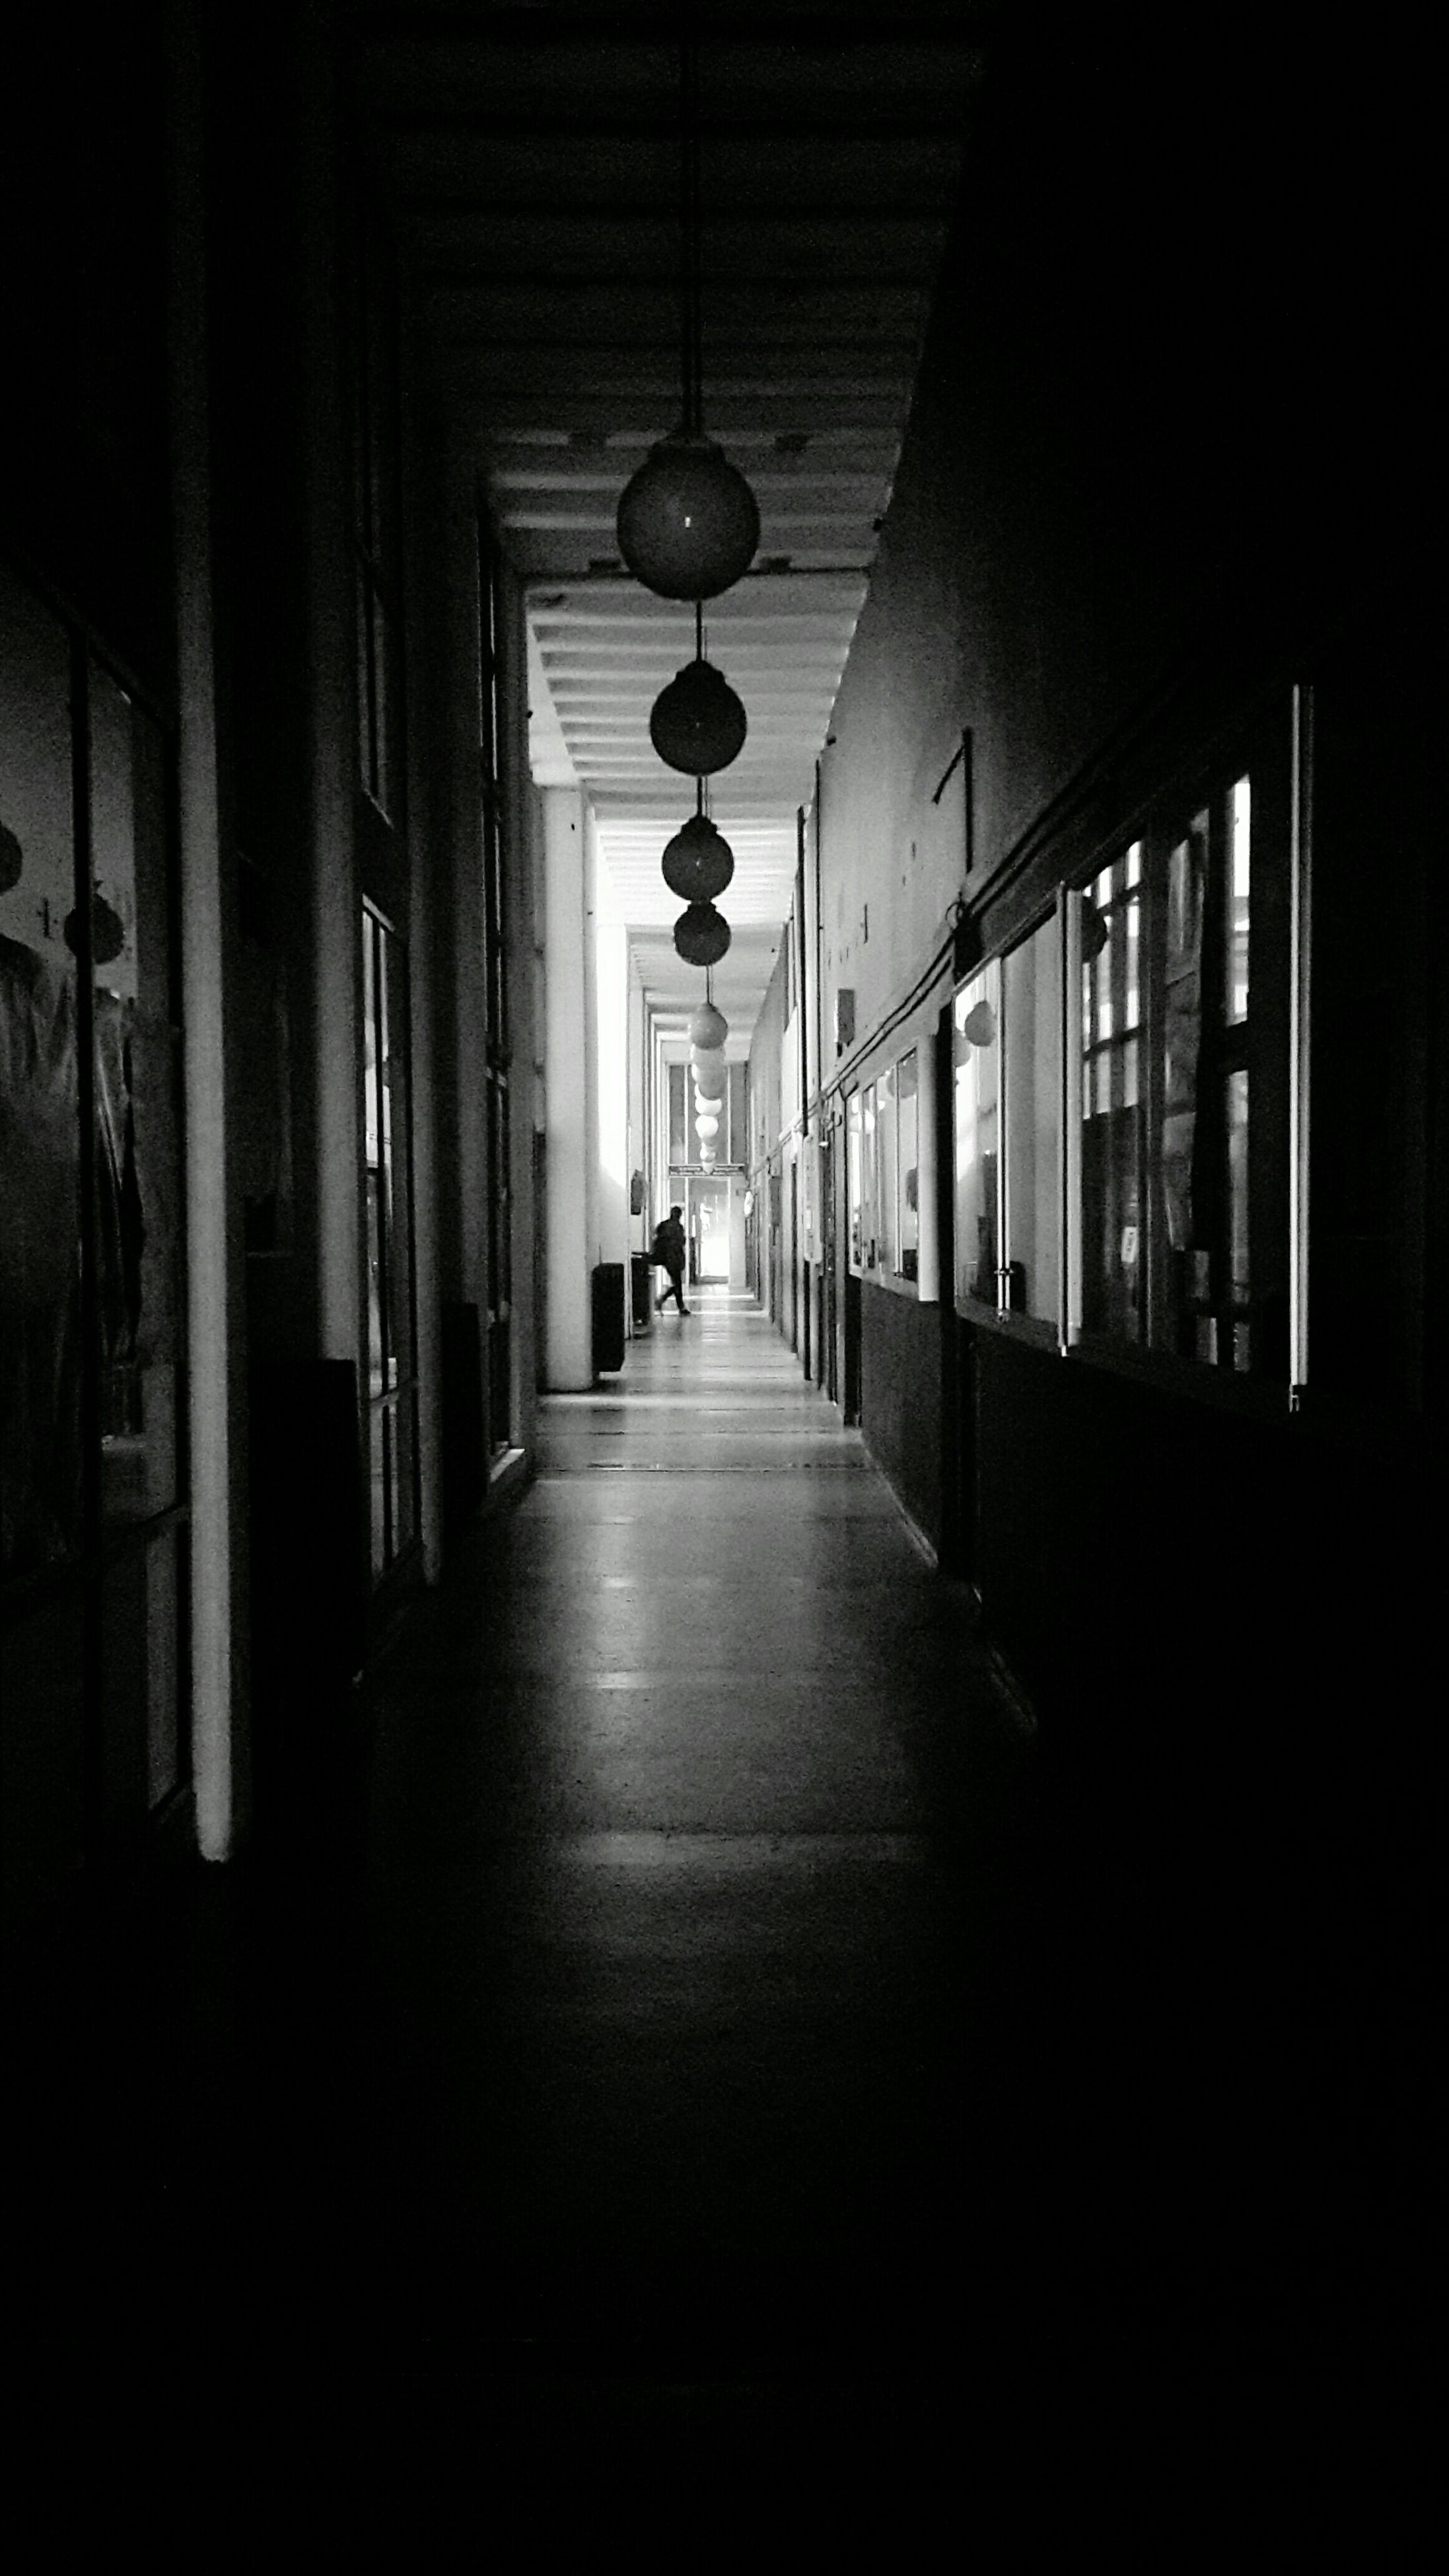 indoors, architecture, the way forward, corridor, built structure, illuminated, lighting equipment, diminishing perspective, ceiling, empty, building, window, in a row, incidental people, vanishing point, electric lamp, narrow, flooring, building exterior, long